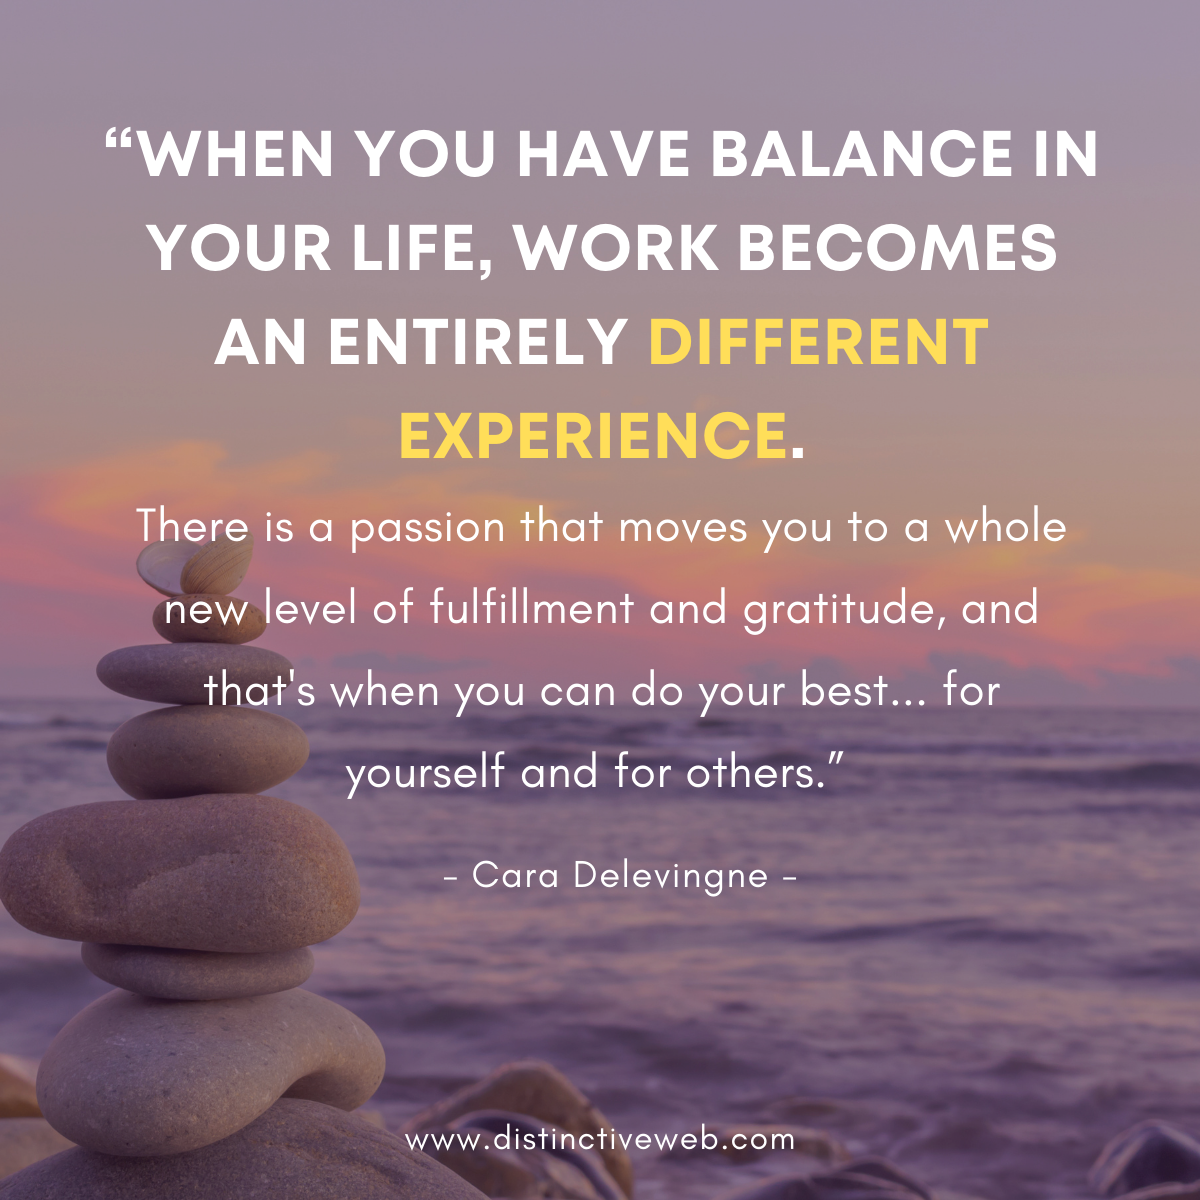 """""""When you have balance in your life, work becomes an entirely different experience. There is a passion that moves you to a whole new level of fulfillment and gratitude, and that's when you can do your best... for yourself and for others."""" -- Cara Delevingne"""